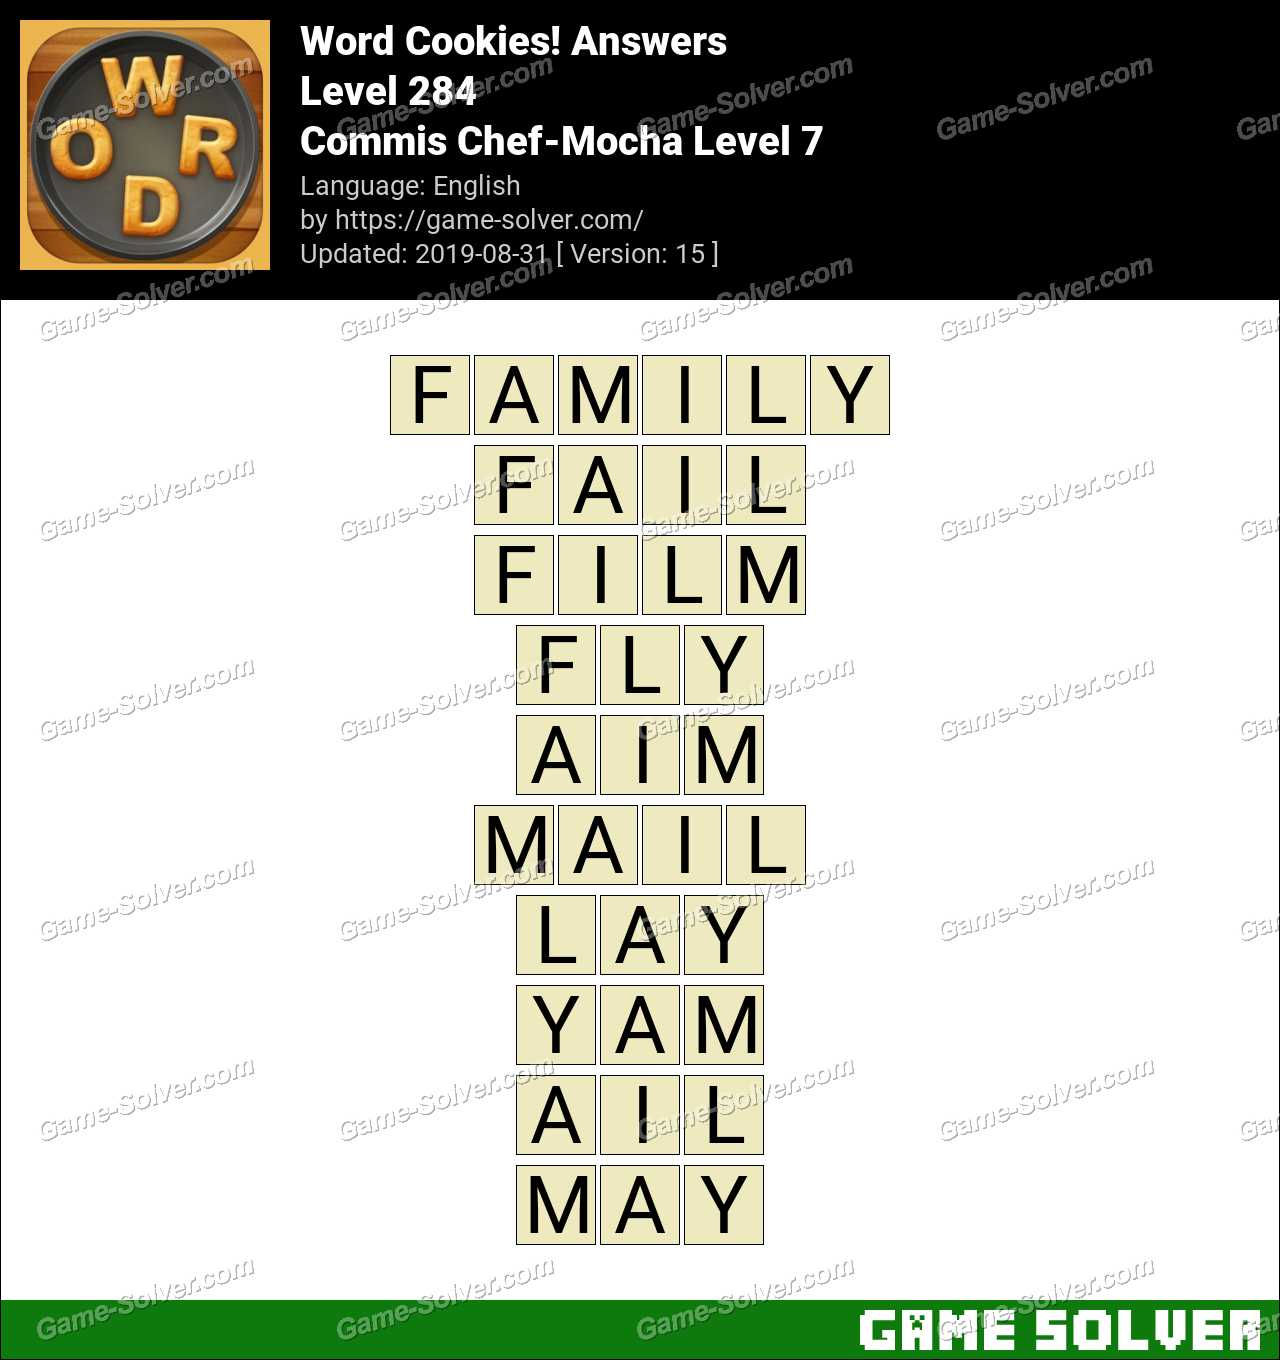 Word Cookies Commis Chef-Mocha Level 7 Answers